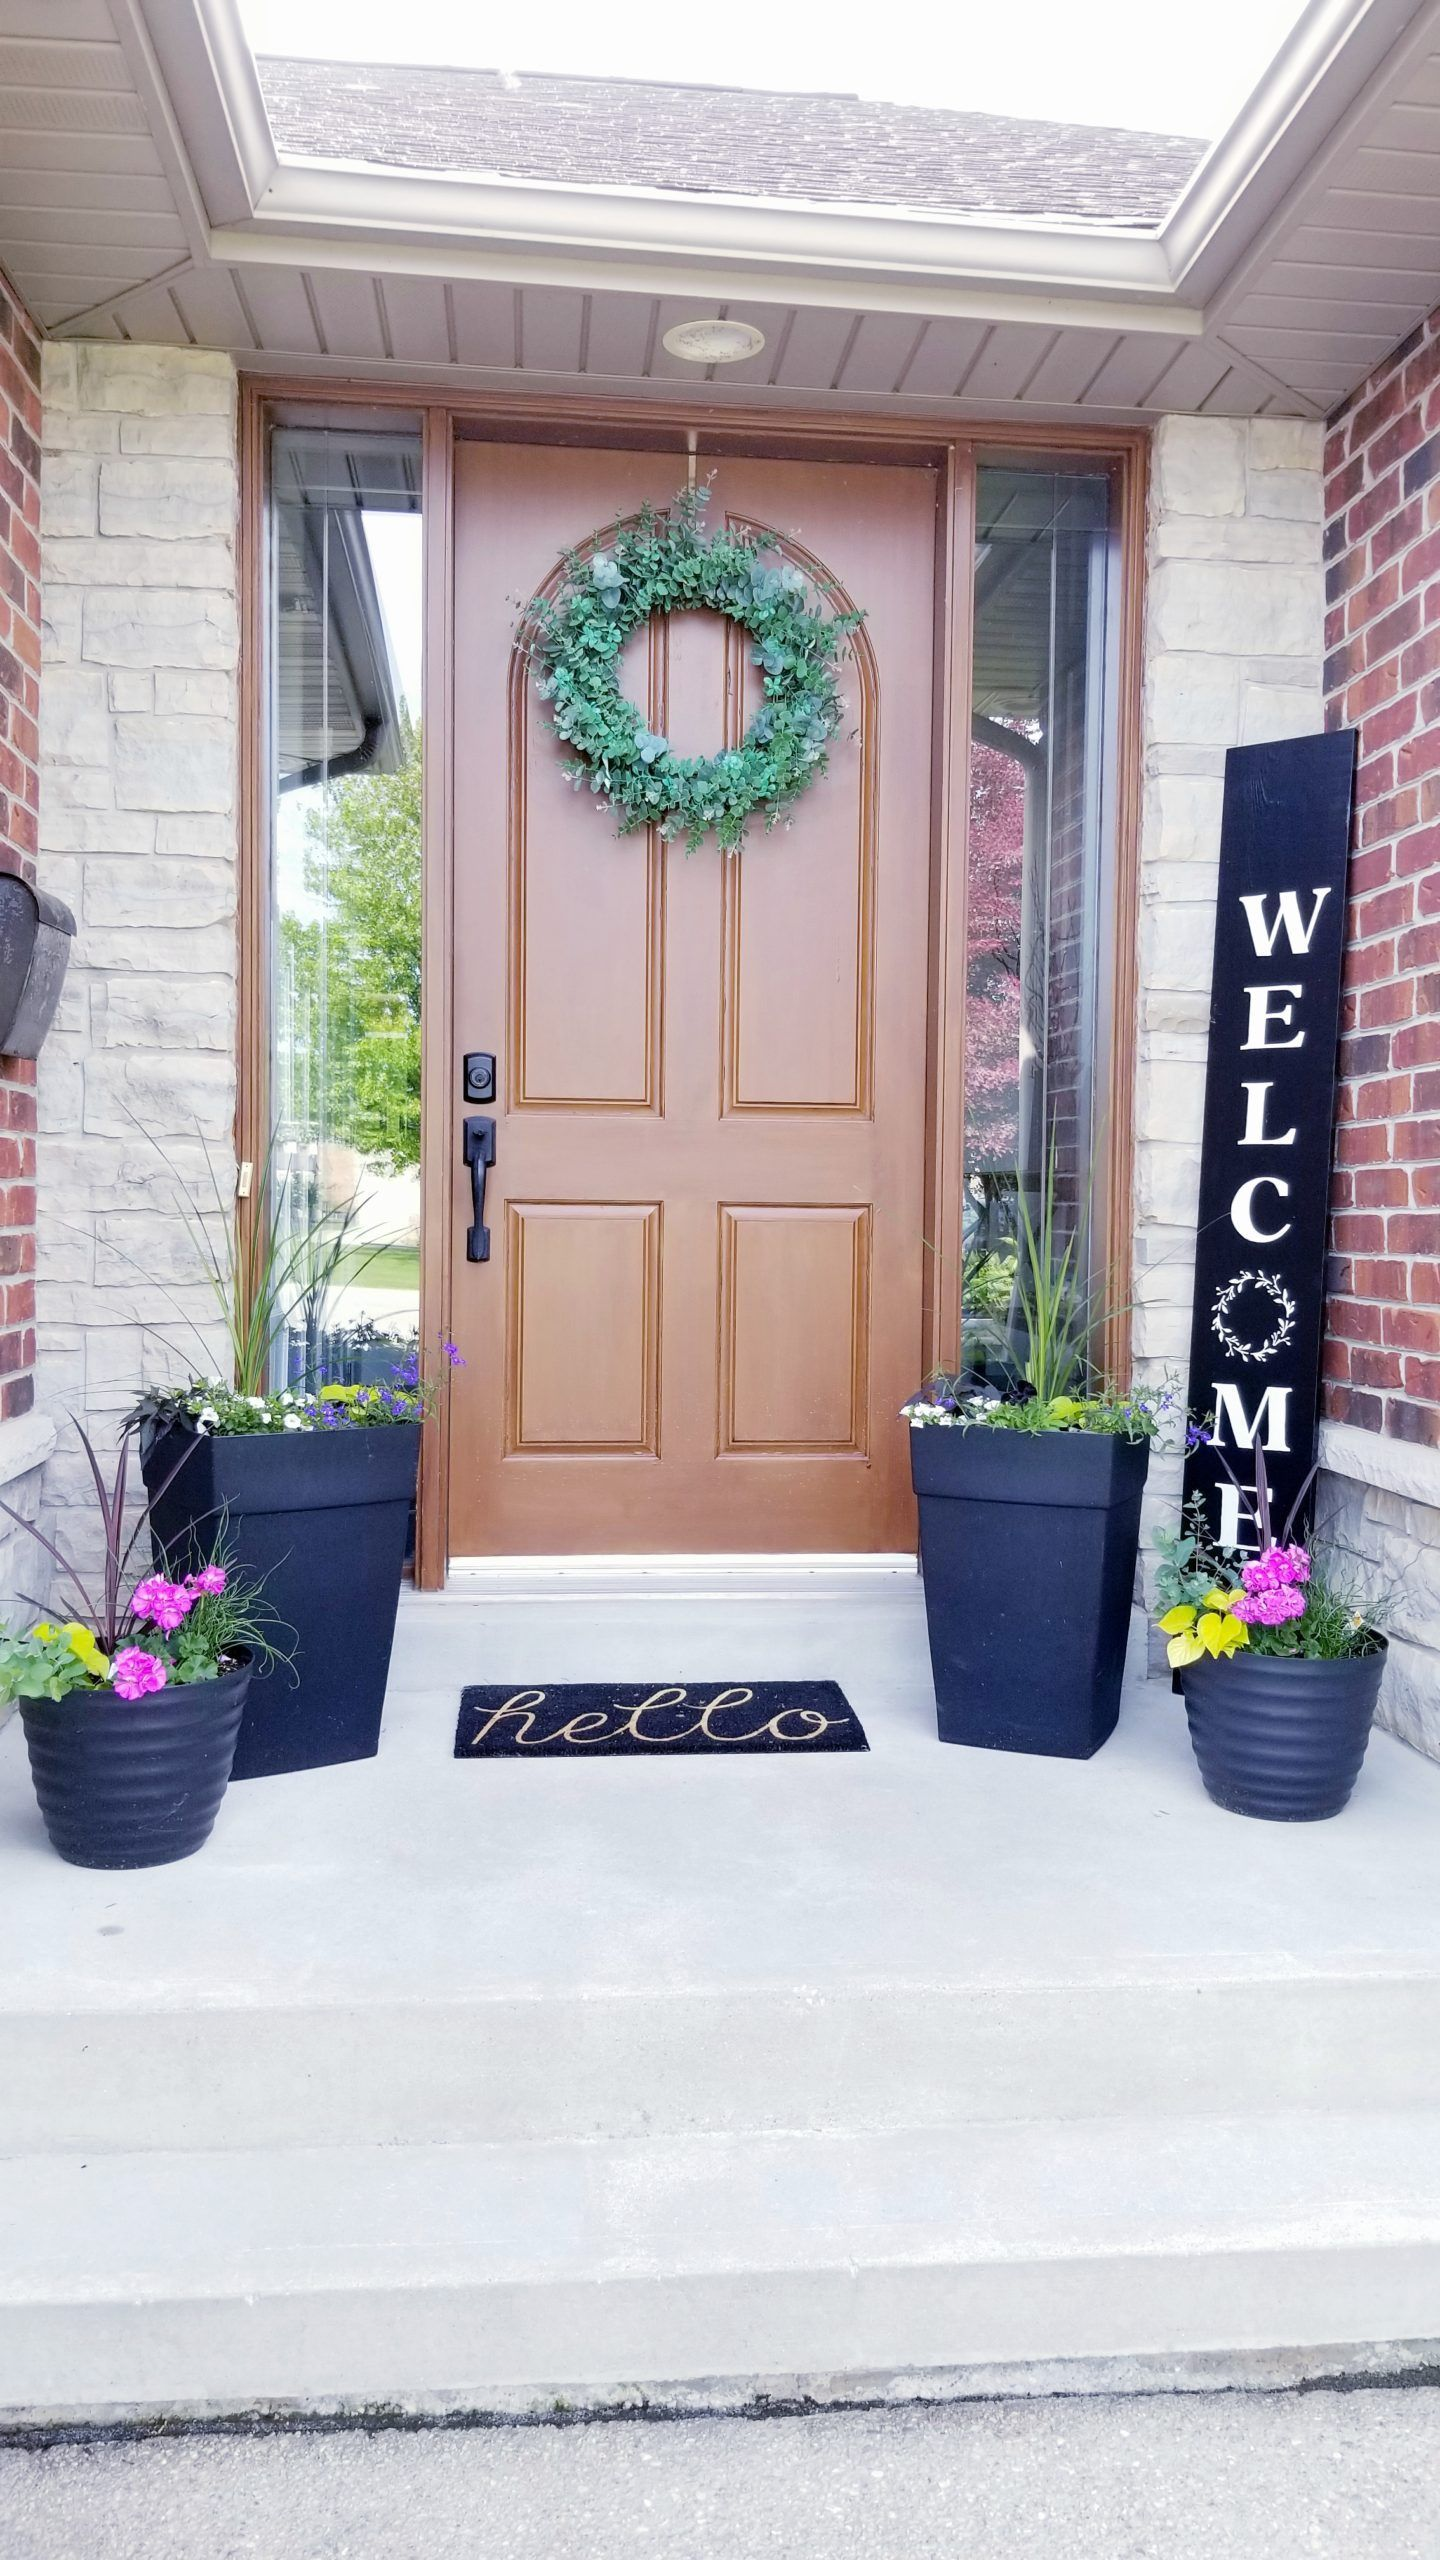 Diy farmhouse sign tutorial inspired to revamp